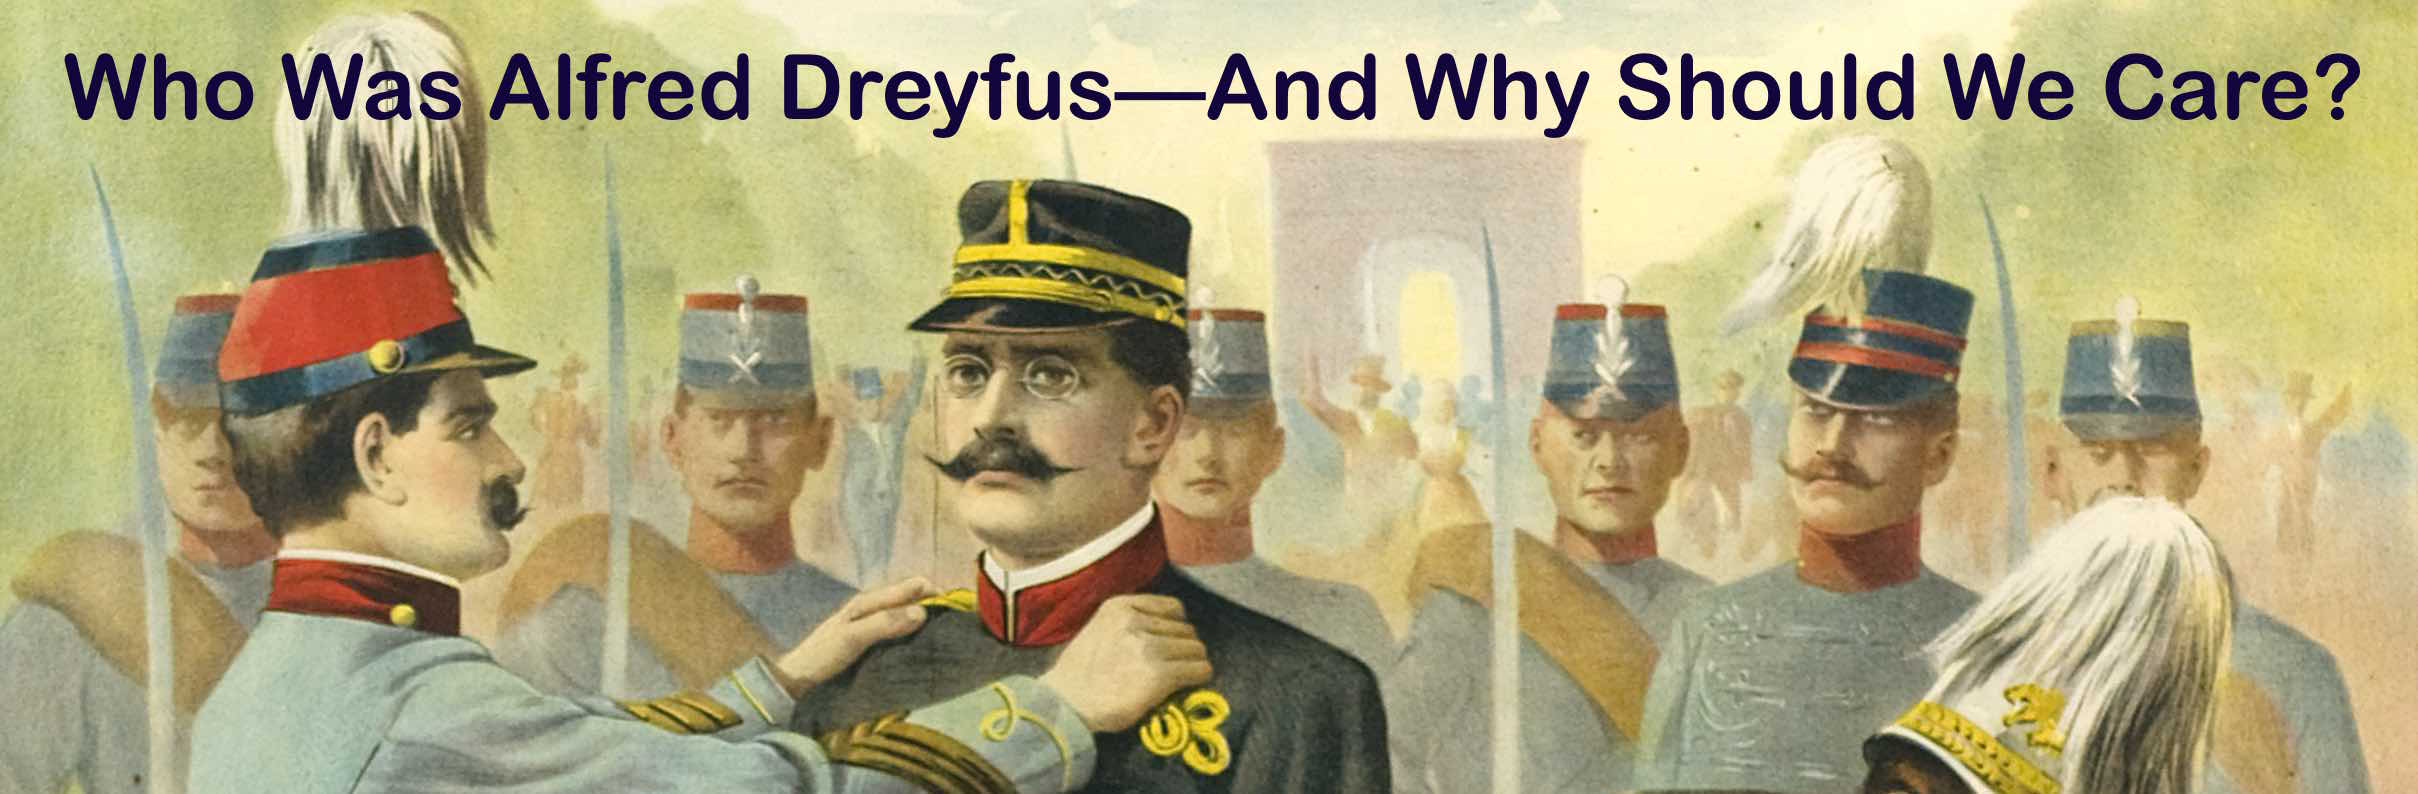 Who Was Alfred Dreyfus—And Why Should We Care?